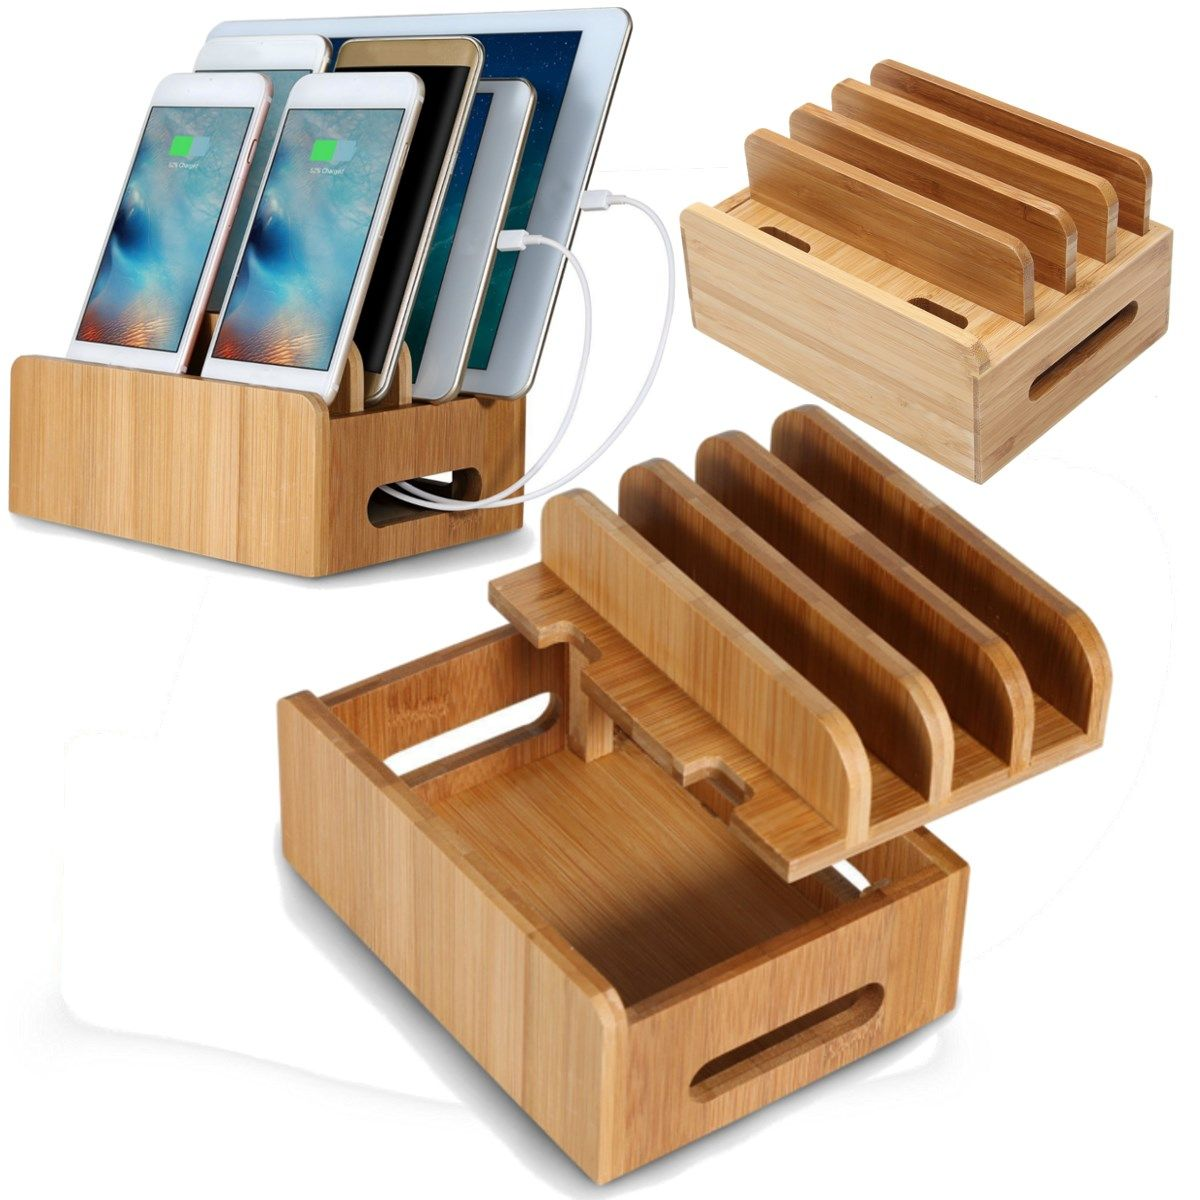 Universal Bamboo Multifunction Mobile Phone Holder Cords Organizer Stand Charging Station For iPhone For Smart Phone/Tablet